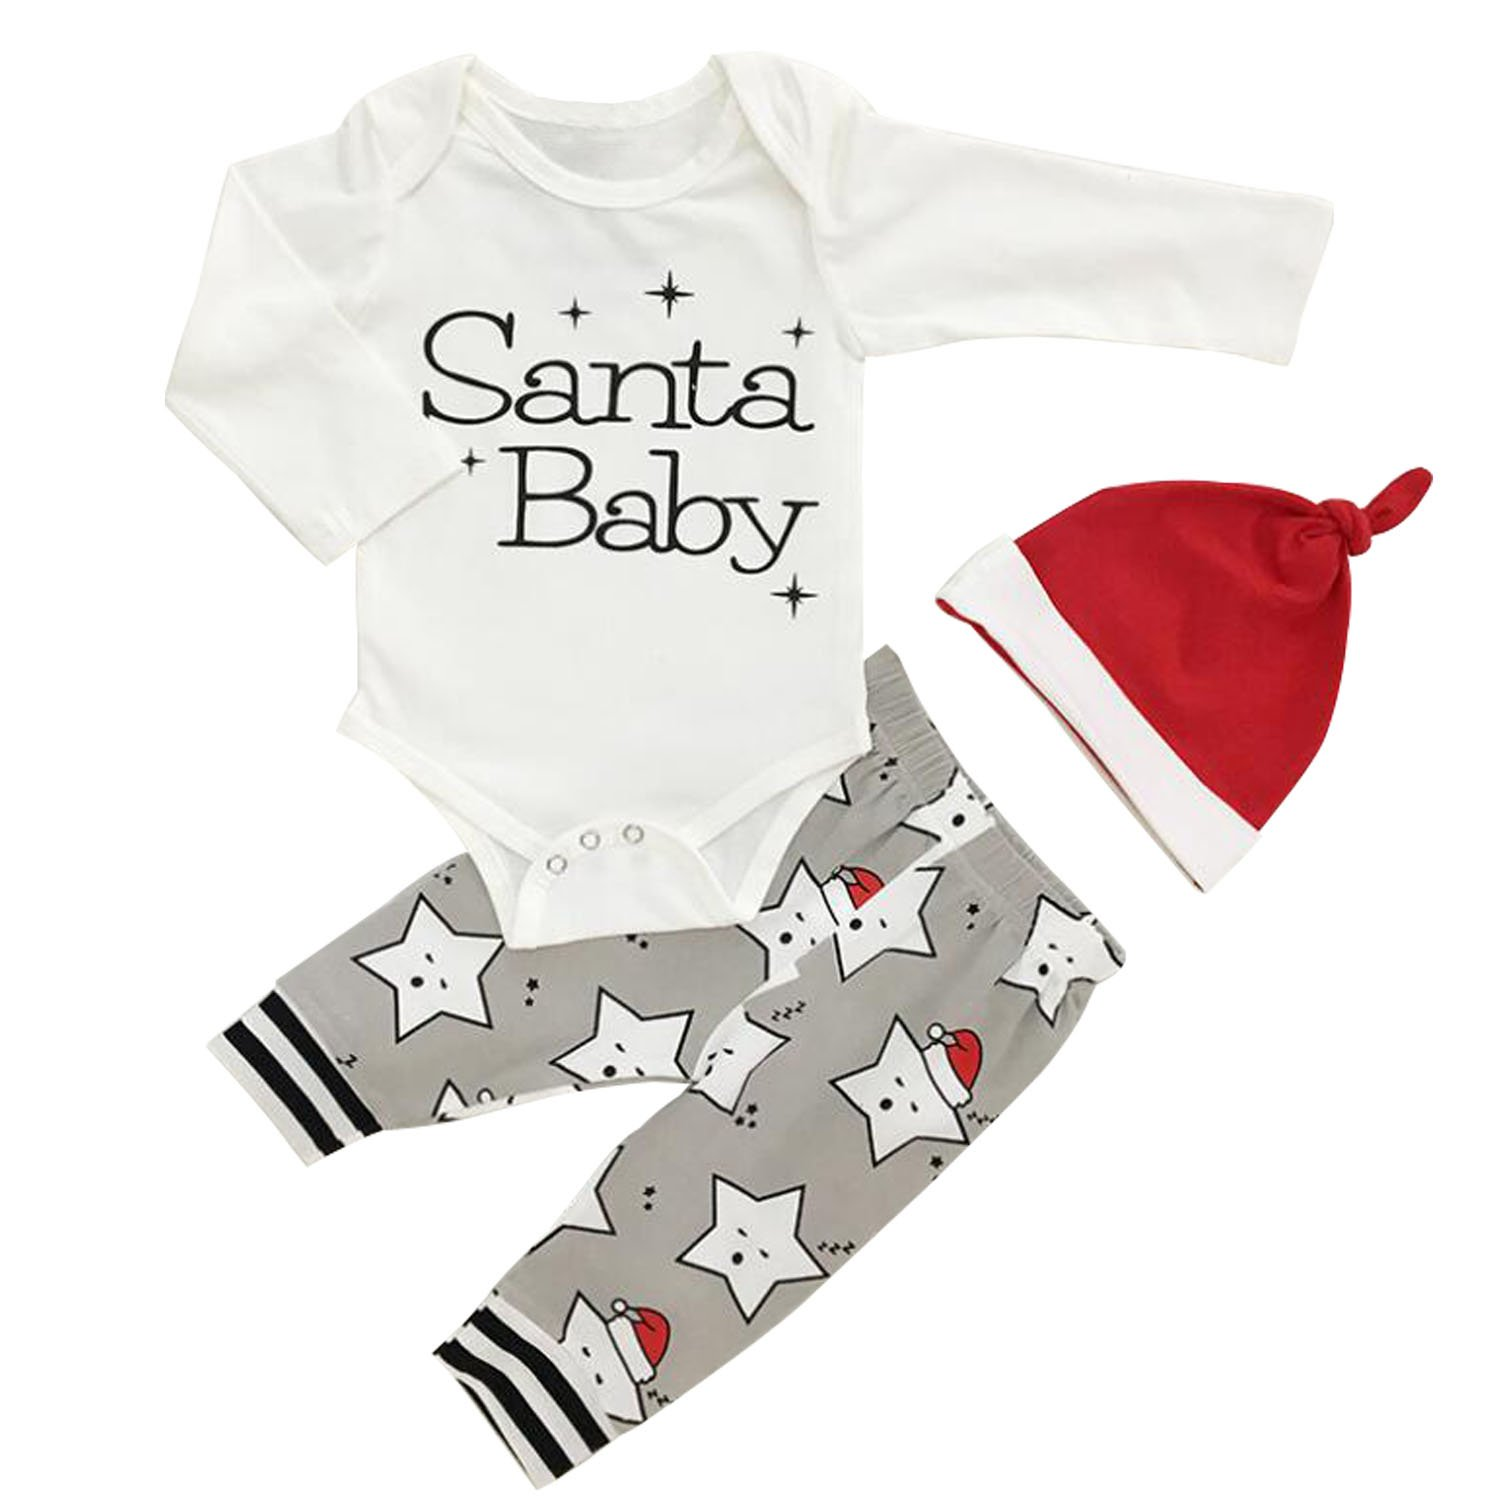 8a9fb41ca Amazon.com: Infant Baby Christmas Santa Baby Letter Printed Bodysuit and  Cute Stars Pattern Pants Set With Hat: Clothing